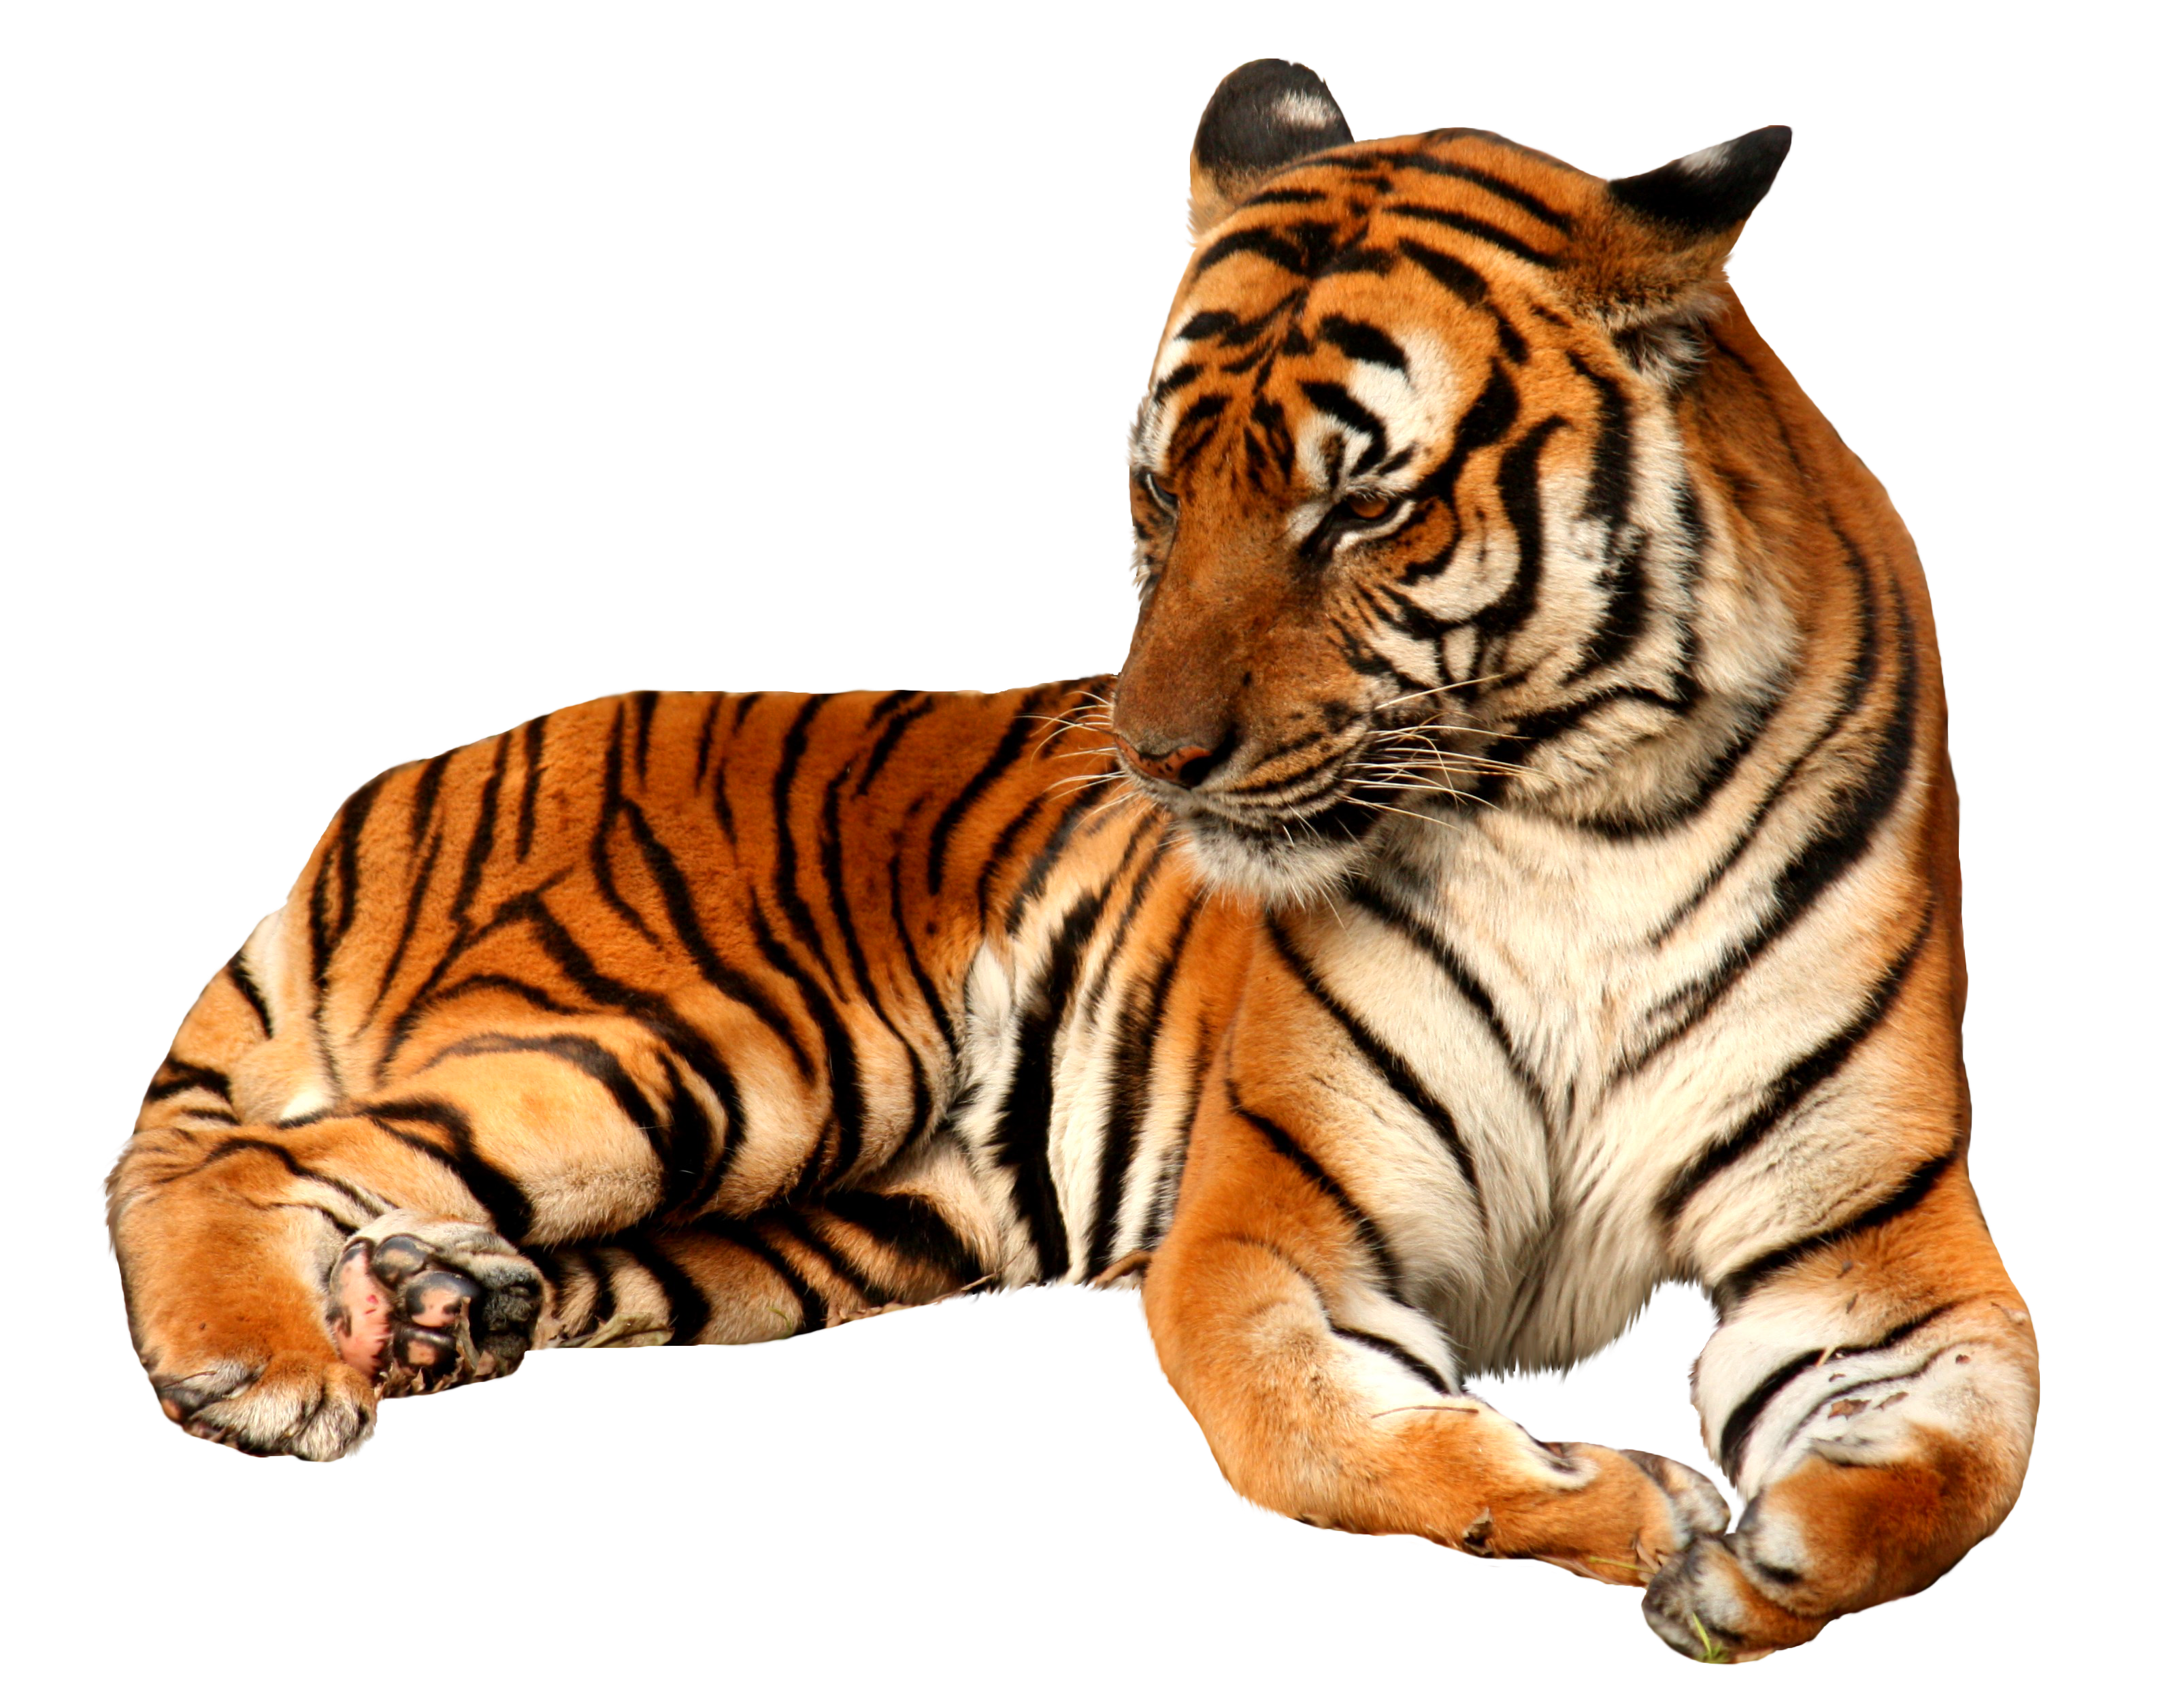 Hunting clipart tiger clipart. Png image without background